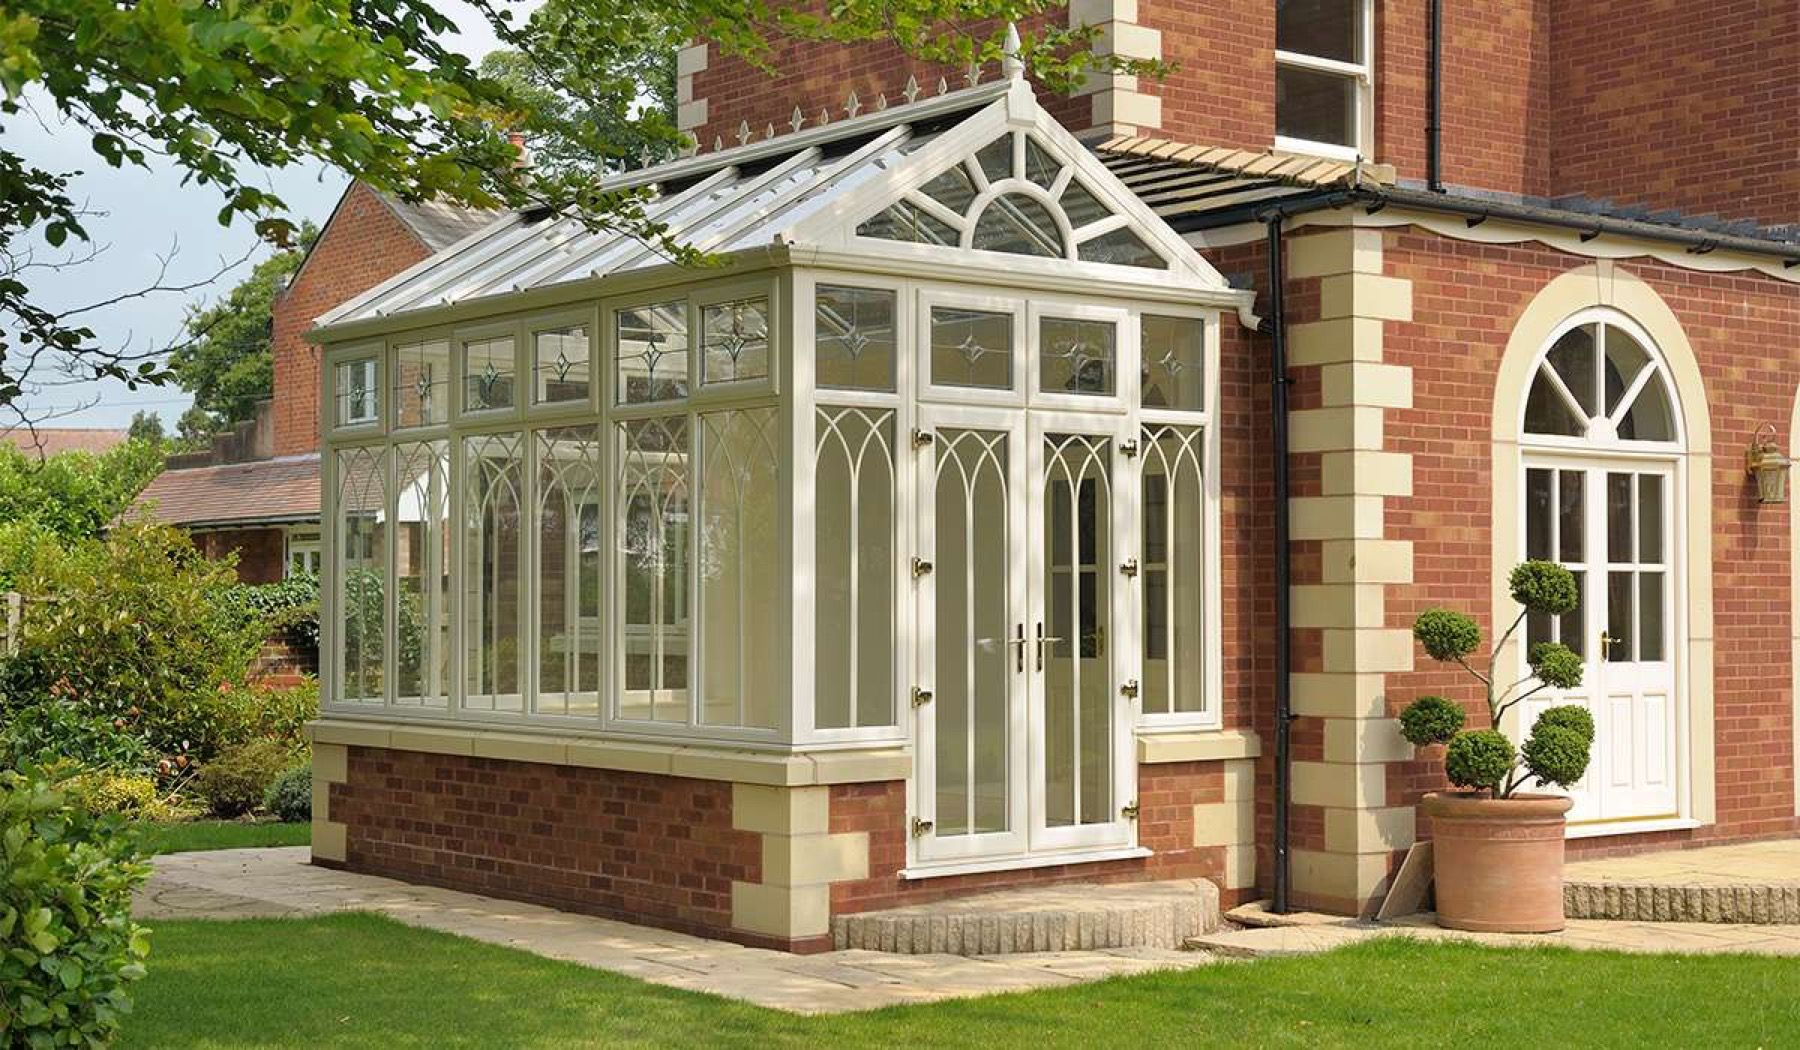 Gable Conservatories At Low Prices In West Yorkshire Conservatory Design Modern Conservatory Conservatory